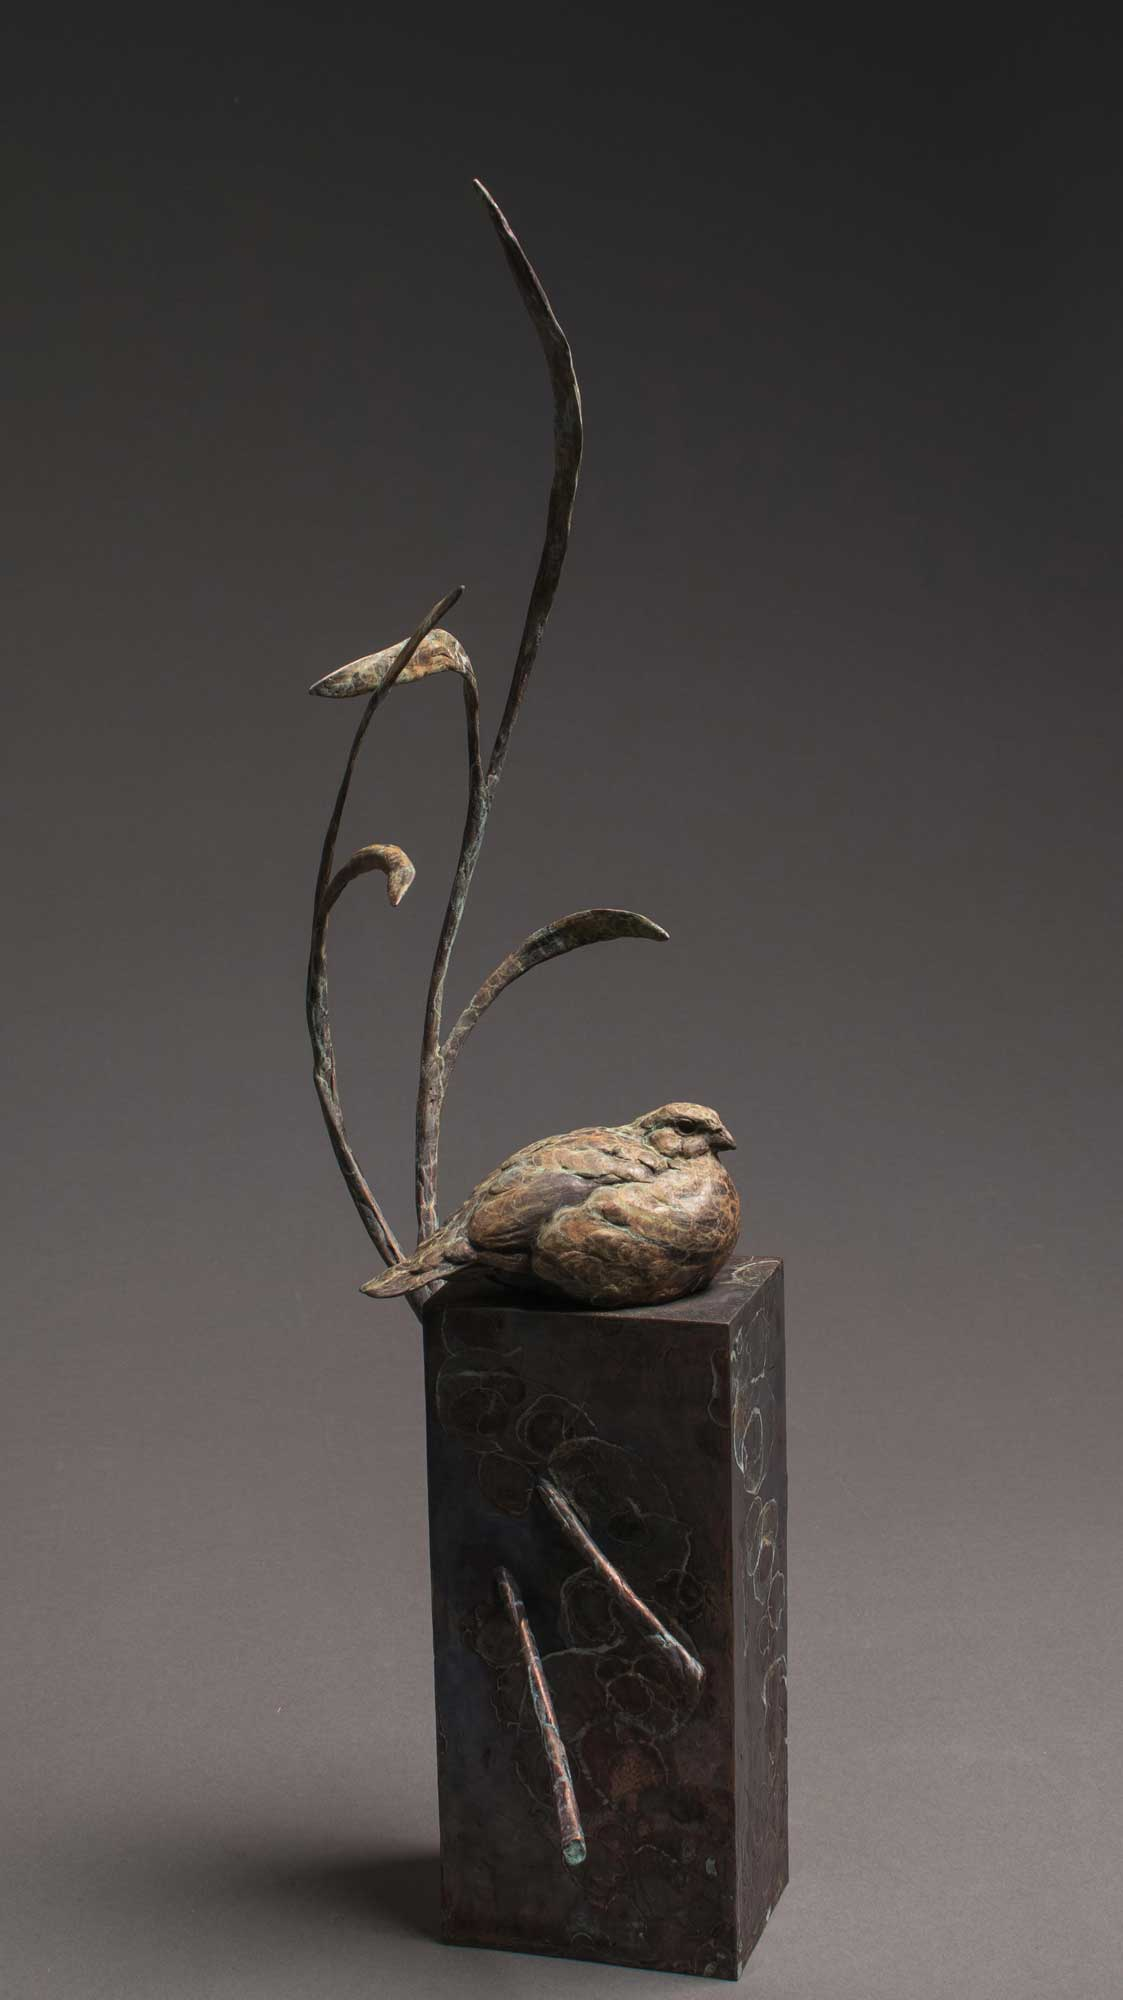 """Summer Breeze"" Bronze Bob White Quail Sculpture Limited Edition Bronze Sculpture L/E 35 26"" H x 7"" W x 9"" D"